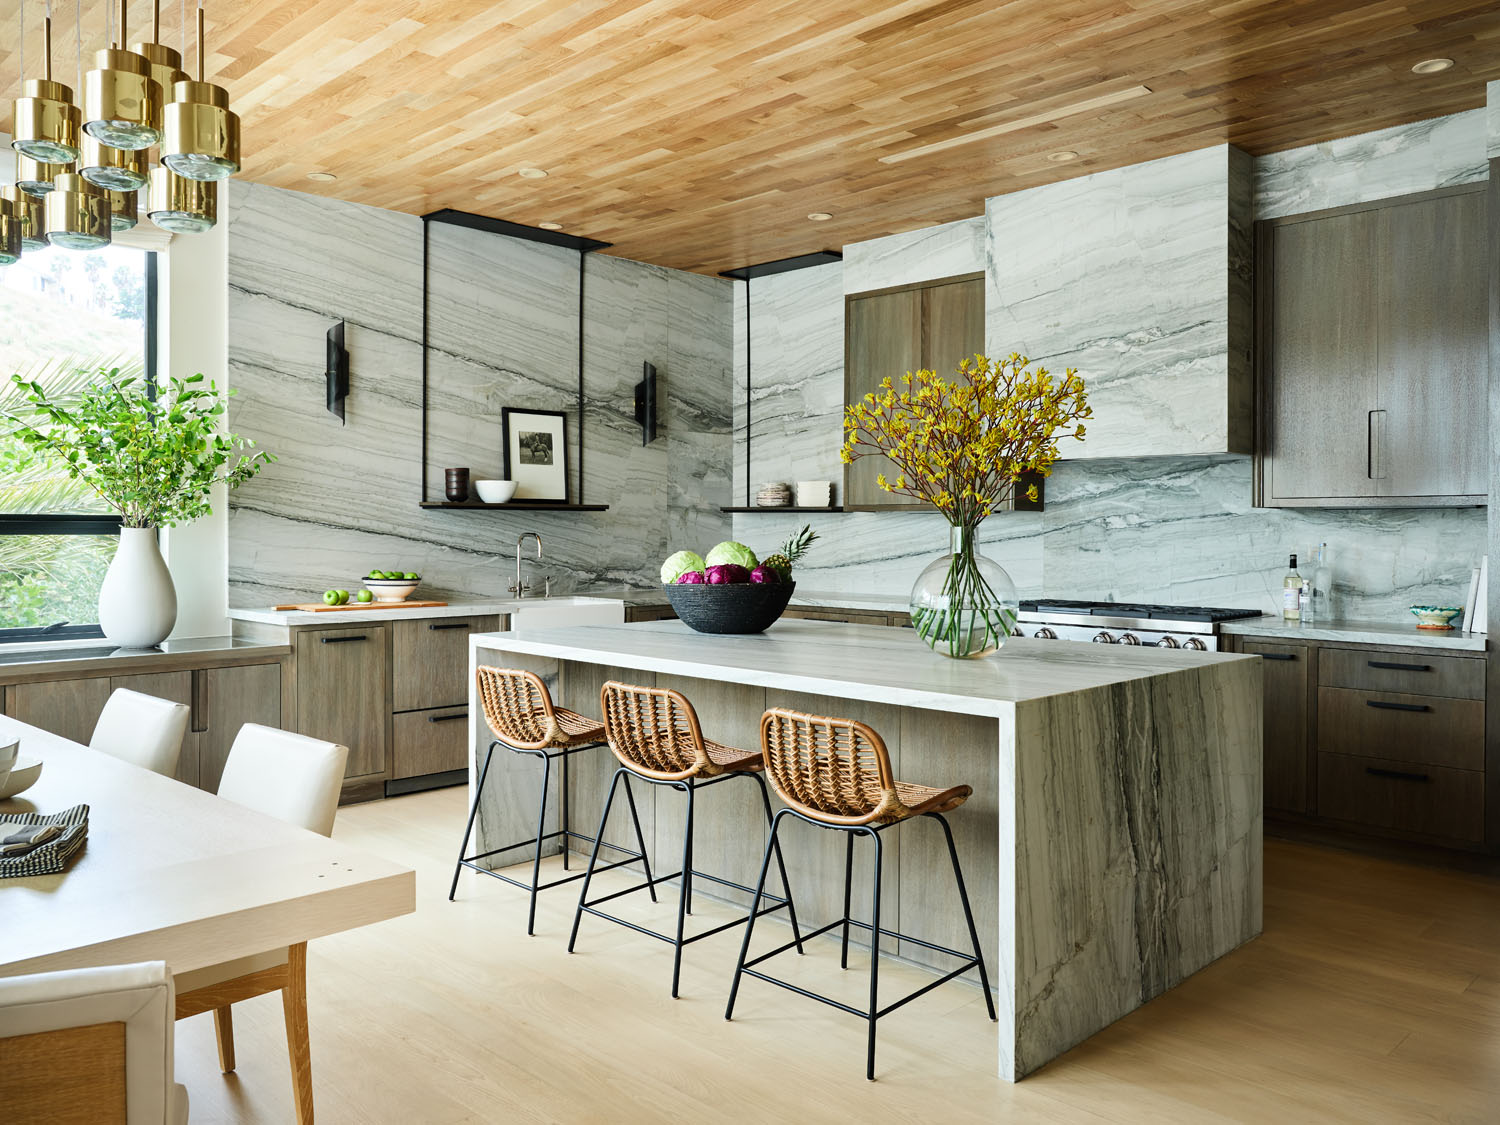 2020 Kitchen Design Award Erinn V Design Group California Home Design